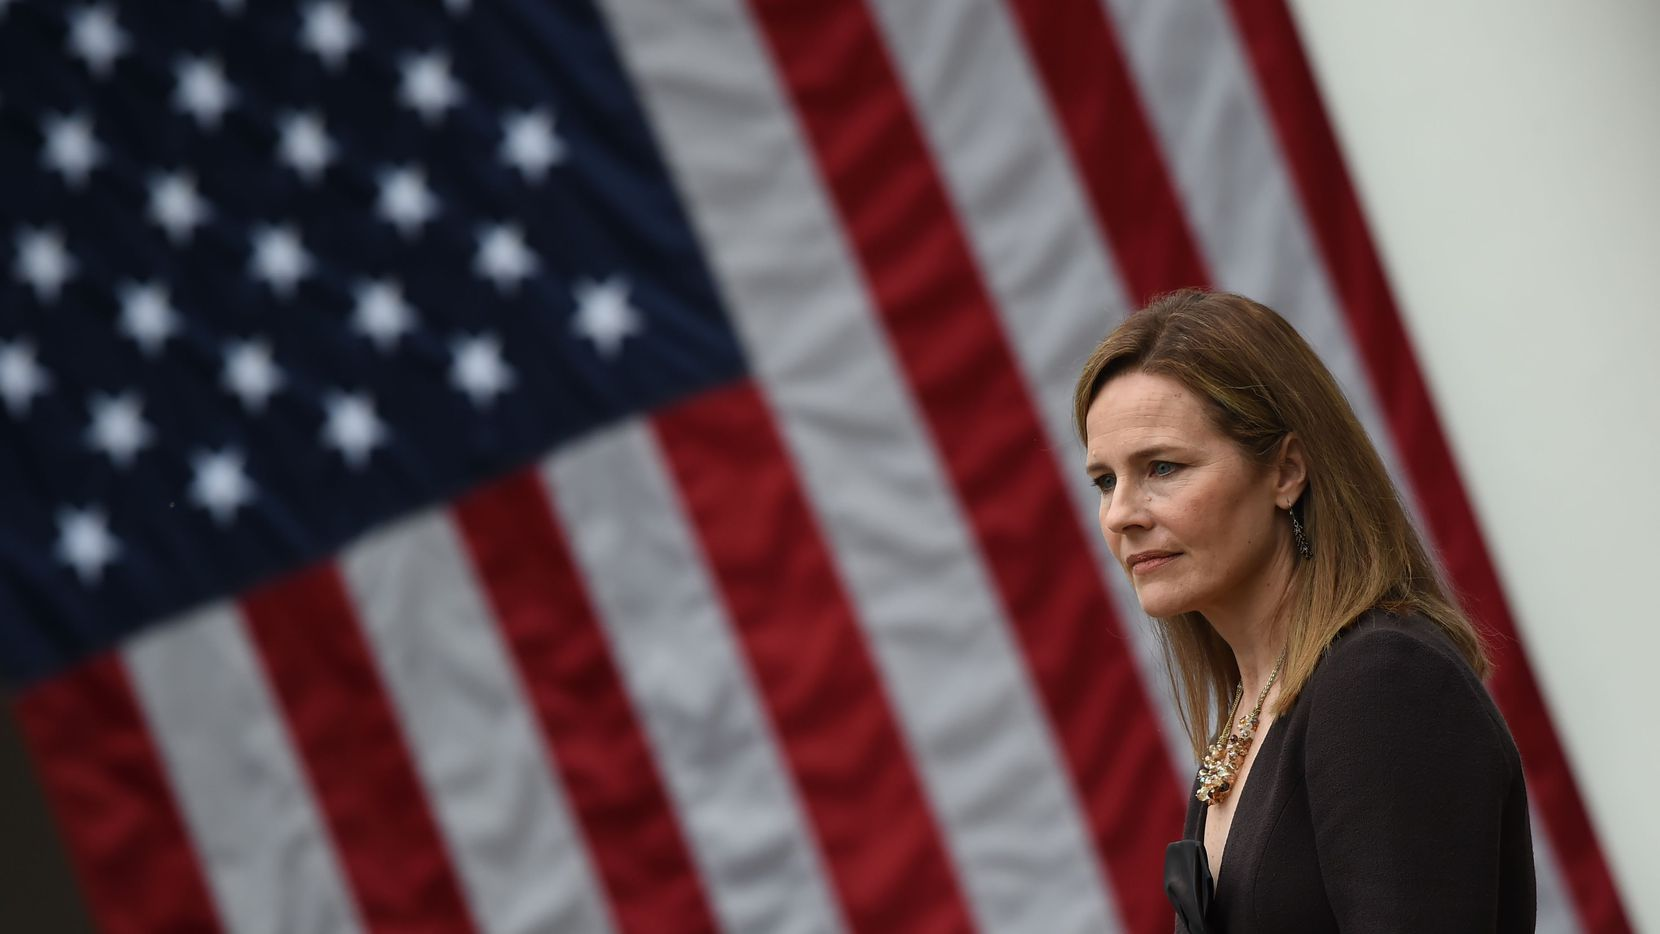 Like the late Supreme Court Justice Antonin Scalia, for whom she once clerked, Amy Coney Barrett is a committed Roman Catholic and a firm devotee of his favored interpretation of the Constitution known as originalism.